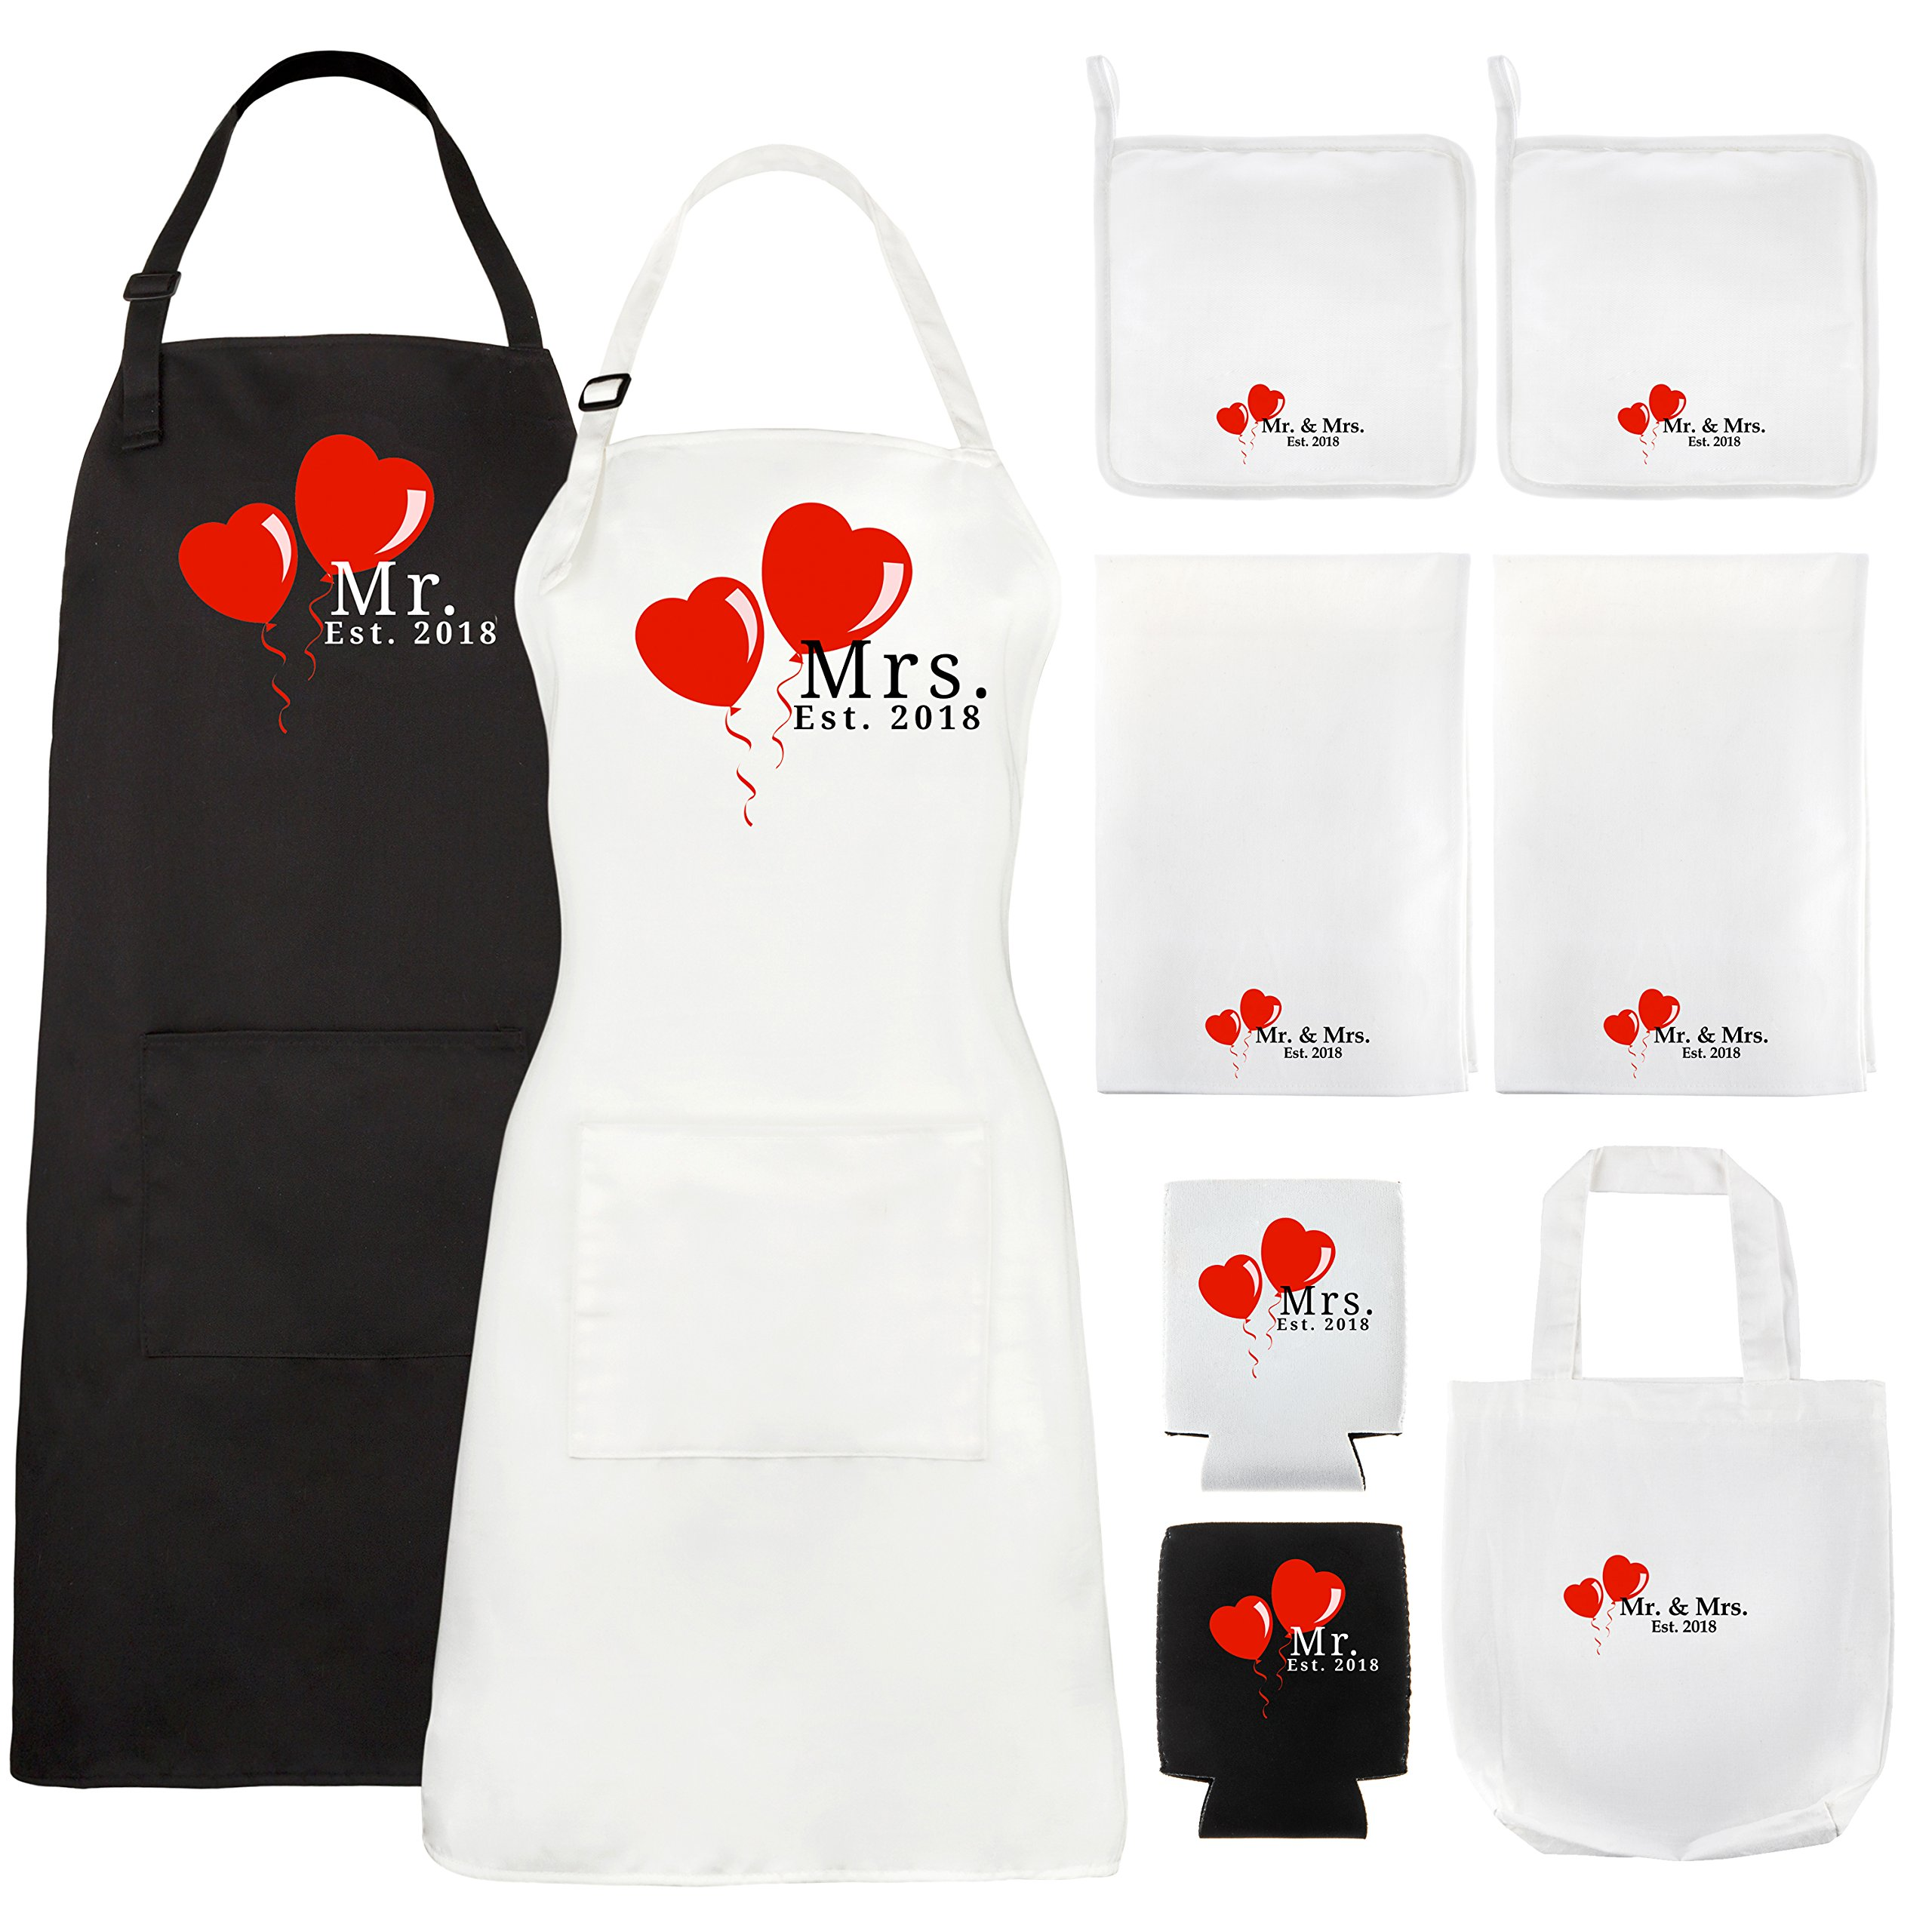 Let the Fun Begin Mr. and Mrs. Aprons 2018 Kitchen Wedding Gift Set Or Bridal Shower Gifts For Newlyweds Couples His Hers